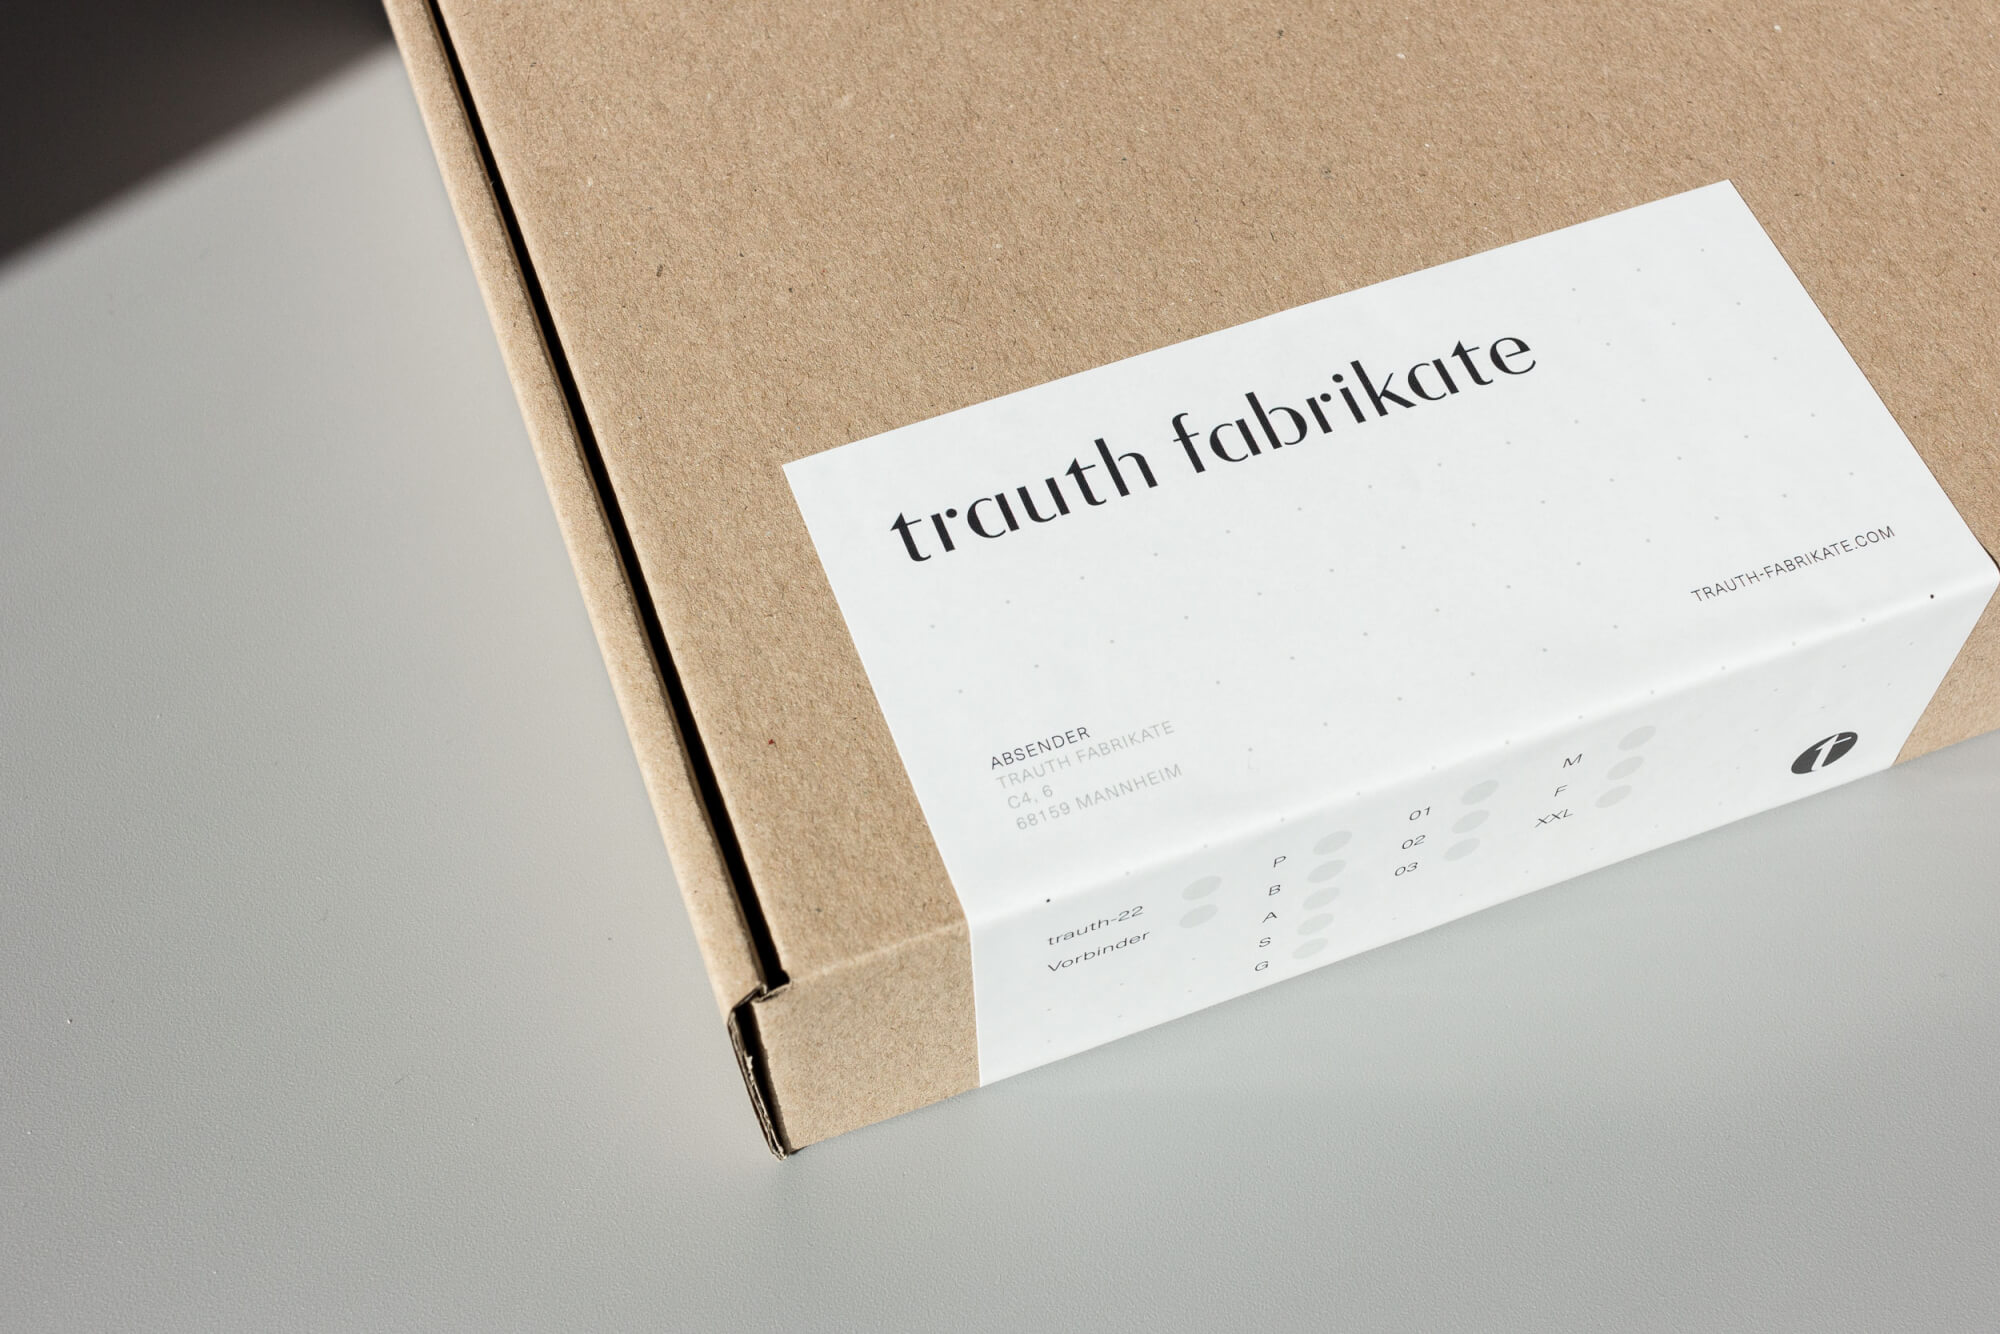 trauth-fabrikate-packaging